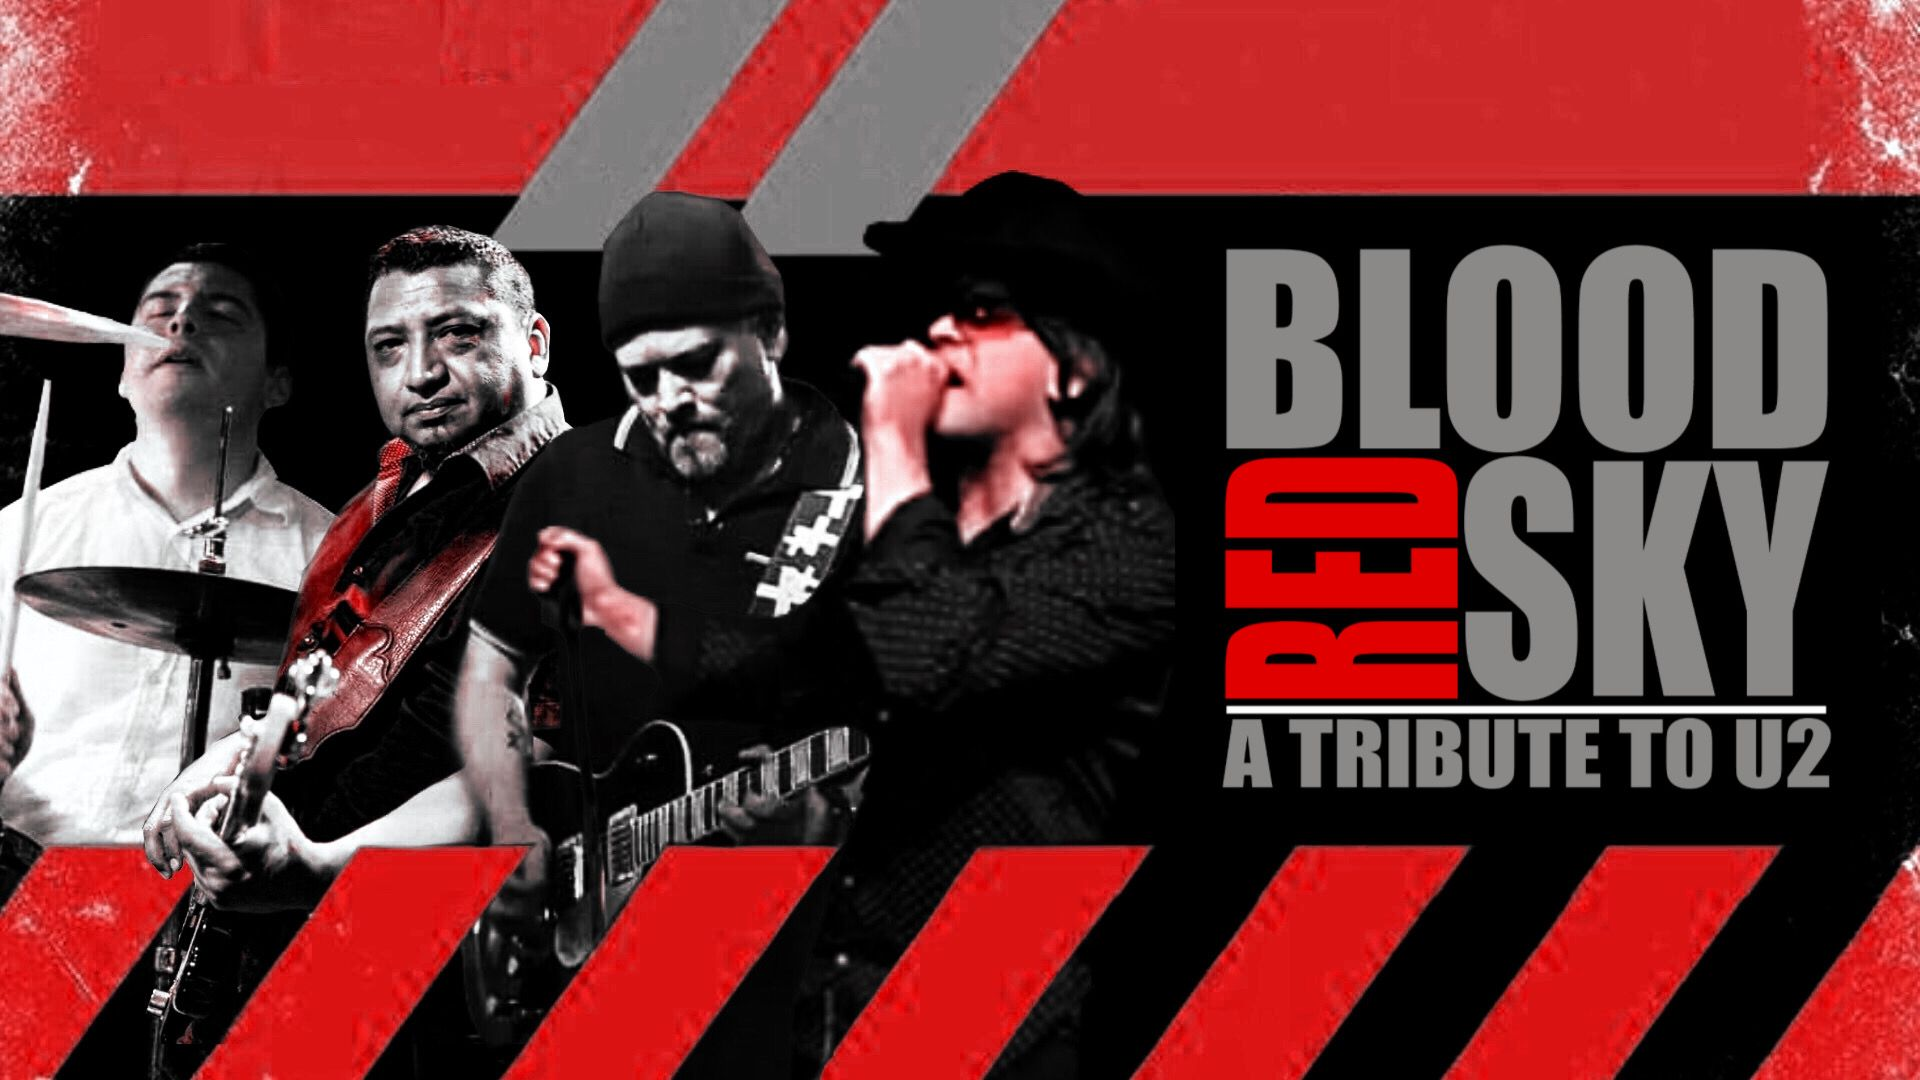 Blood Red Sky - A Tribute to U2: